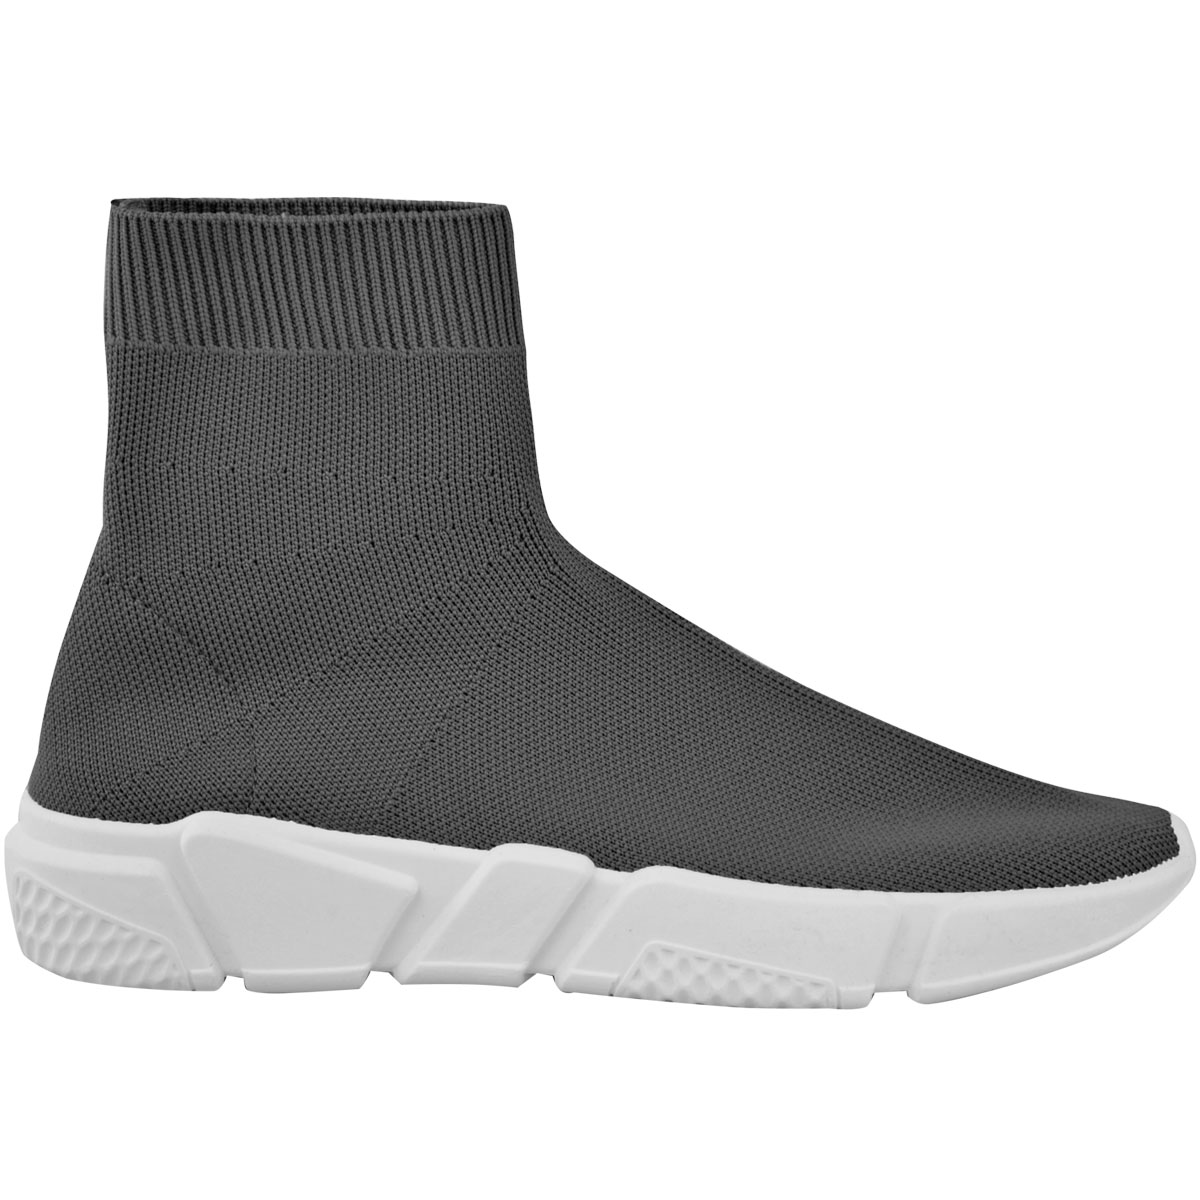 New-Womens-Ladies-Sneakers-Trainers-Sock-Runners-Comfy-Speed-Knit-Gym-Shoes-Size Indexbild 24